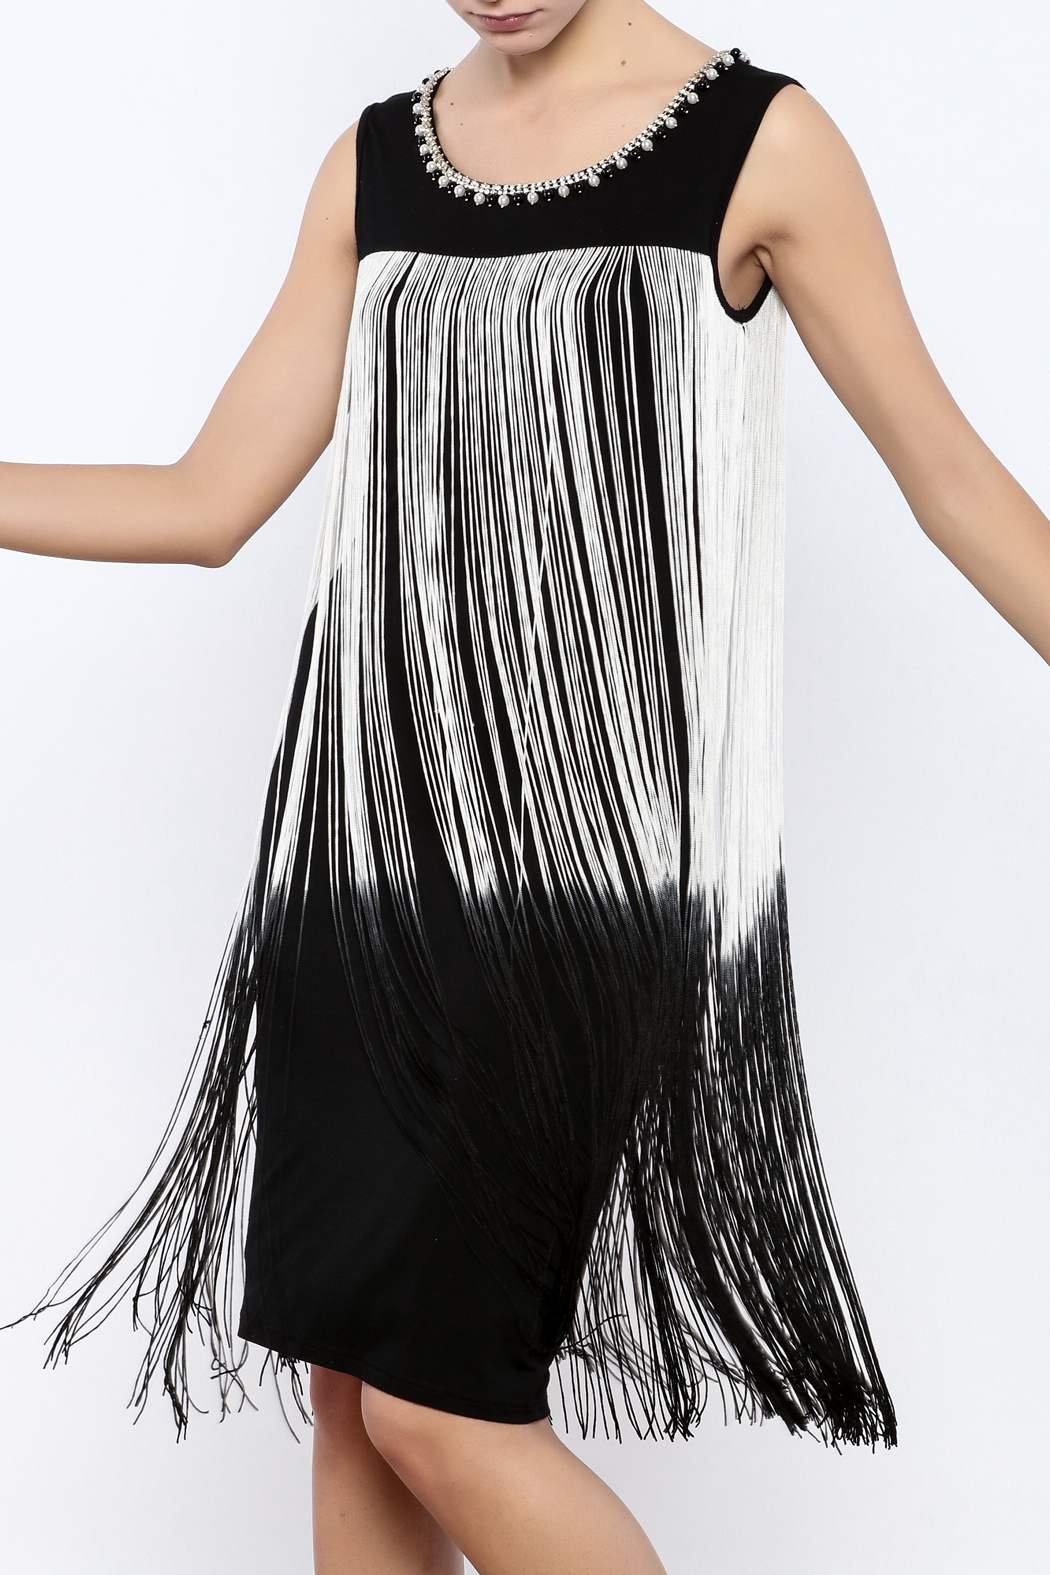 Frank Lyman Ombre Fringe Dress From Canada By Didi S